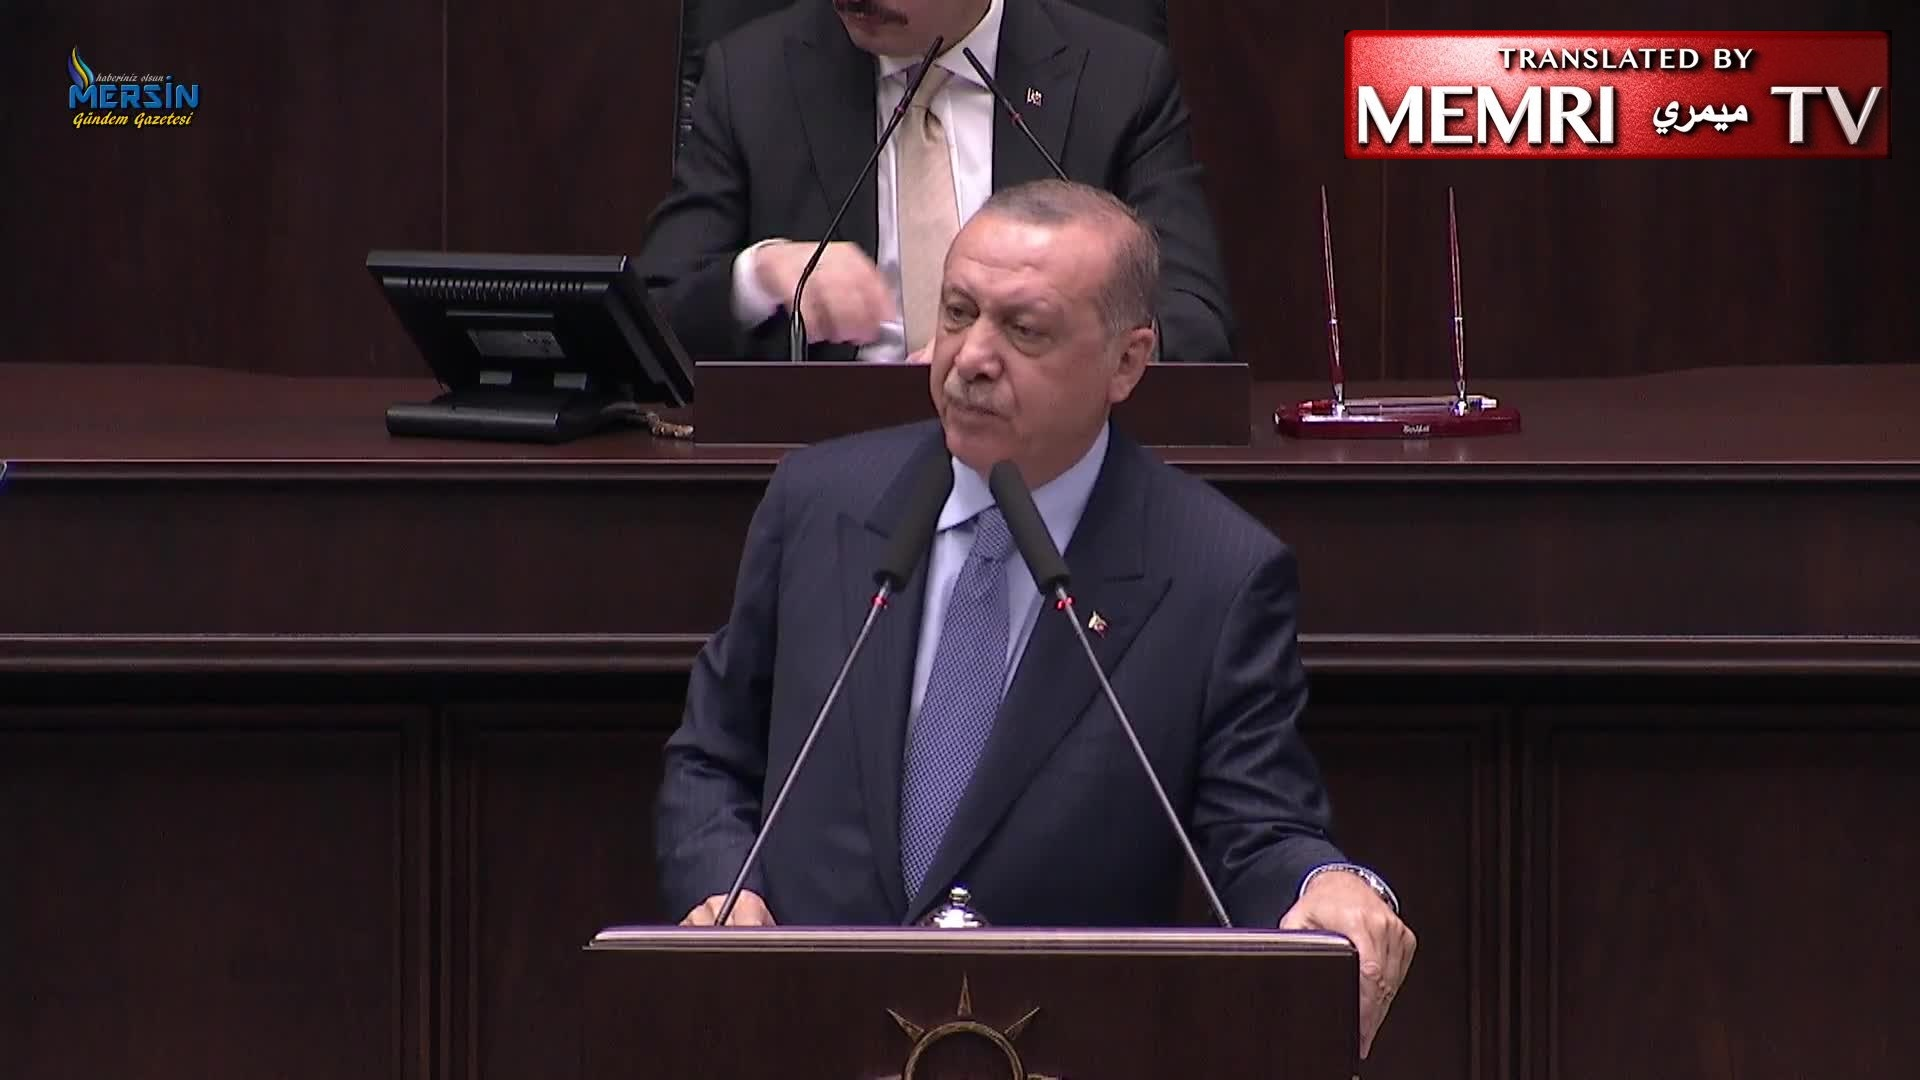 Turkish President Erdoğan Criticizes Calls to Remove Controversial Verses from the Quran: If They Had Read the Bible, They Would Probably Want It Banned Too